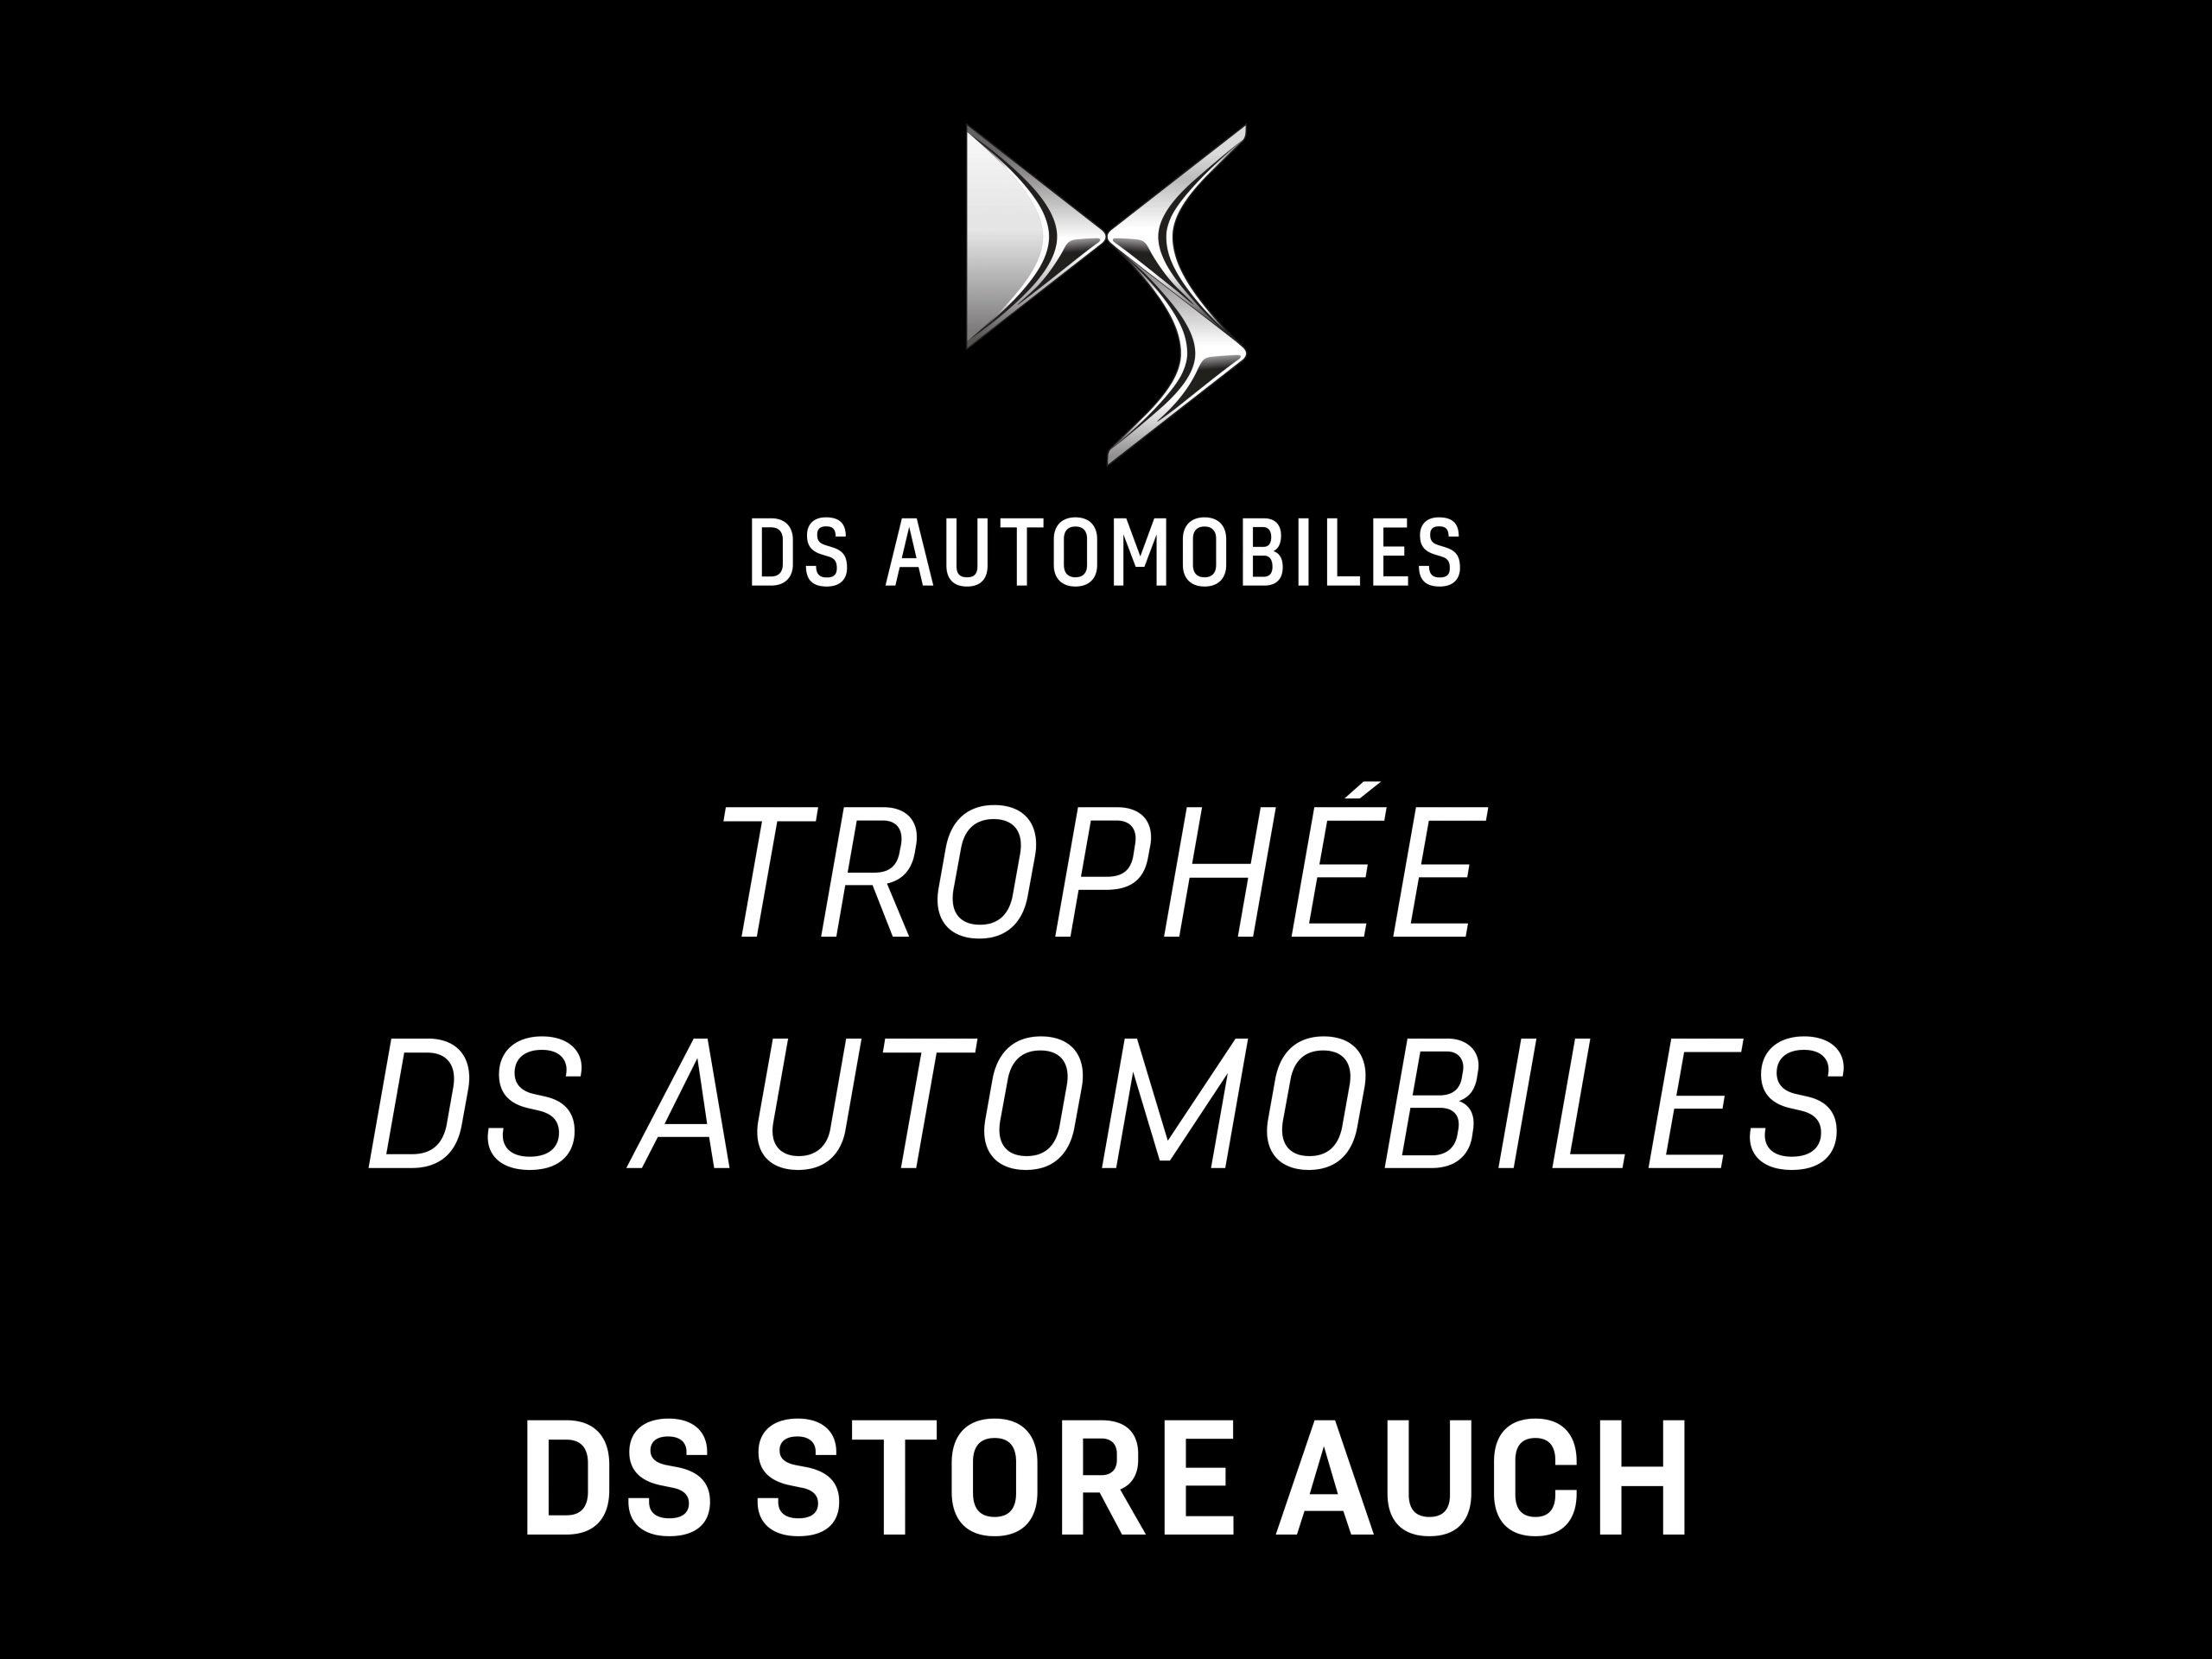 DS STORE AUCH